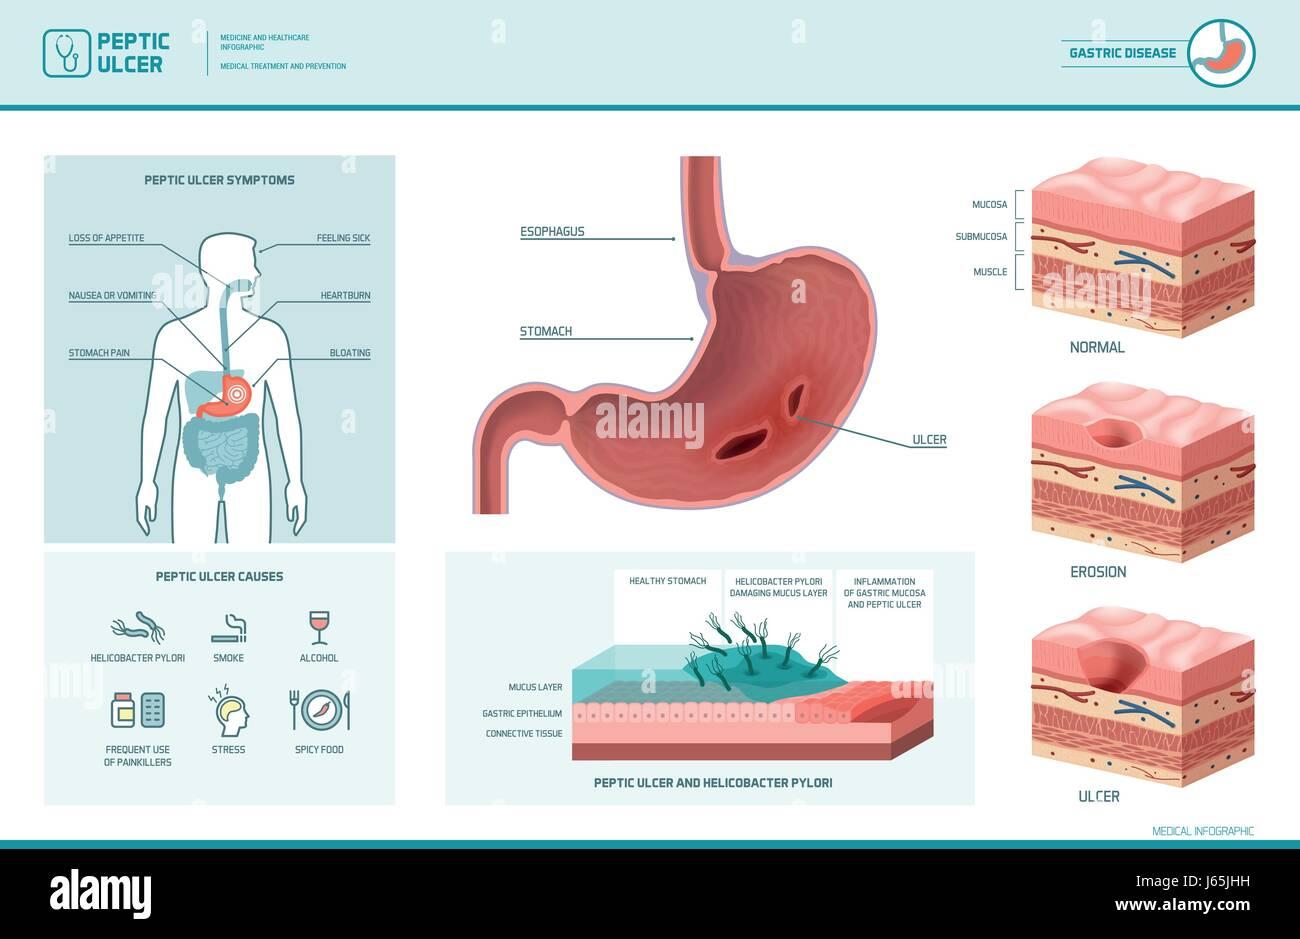 peptic ulcer and helicobacter pylori infographic with symptoms and causes,  stomach cross section diagram, medical illustration